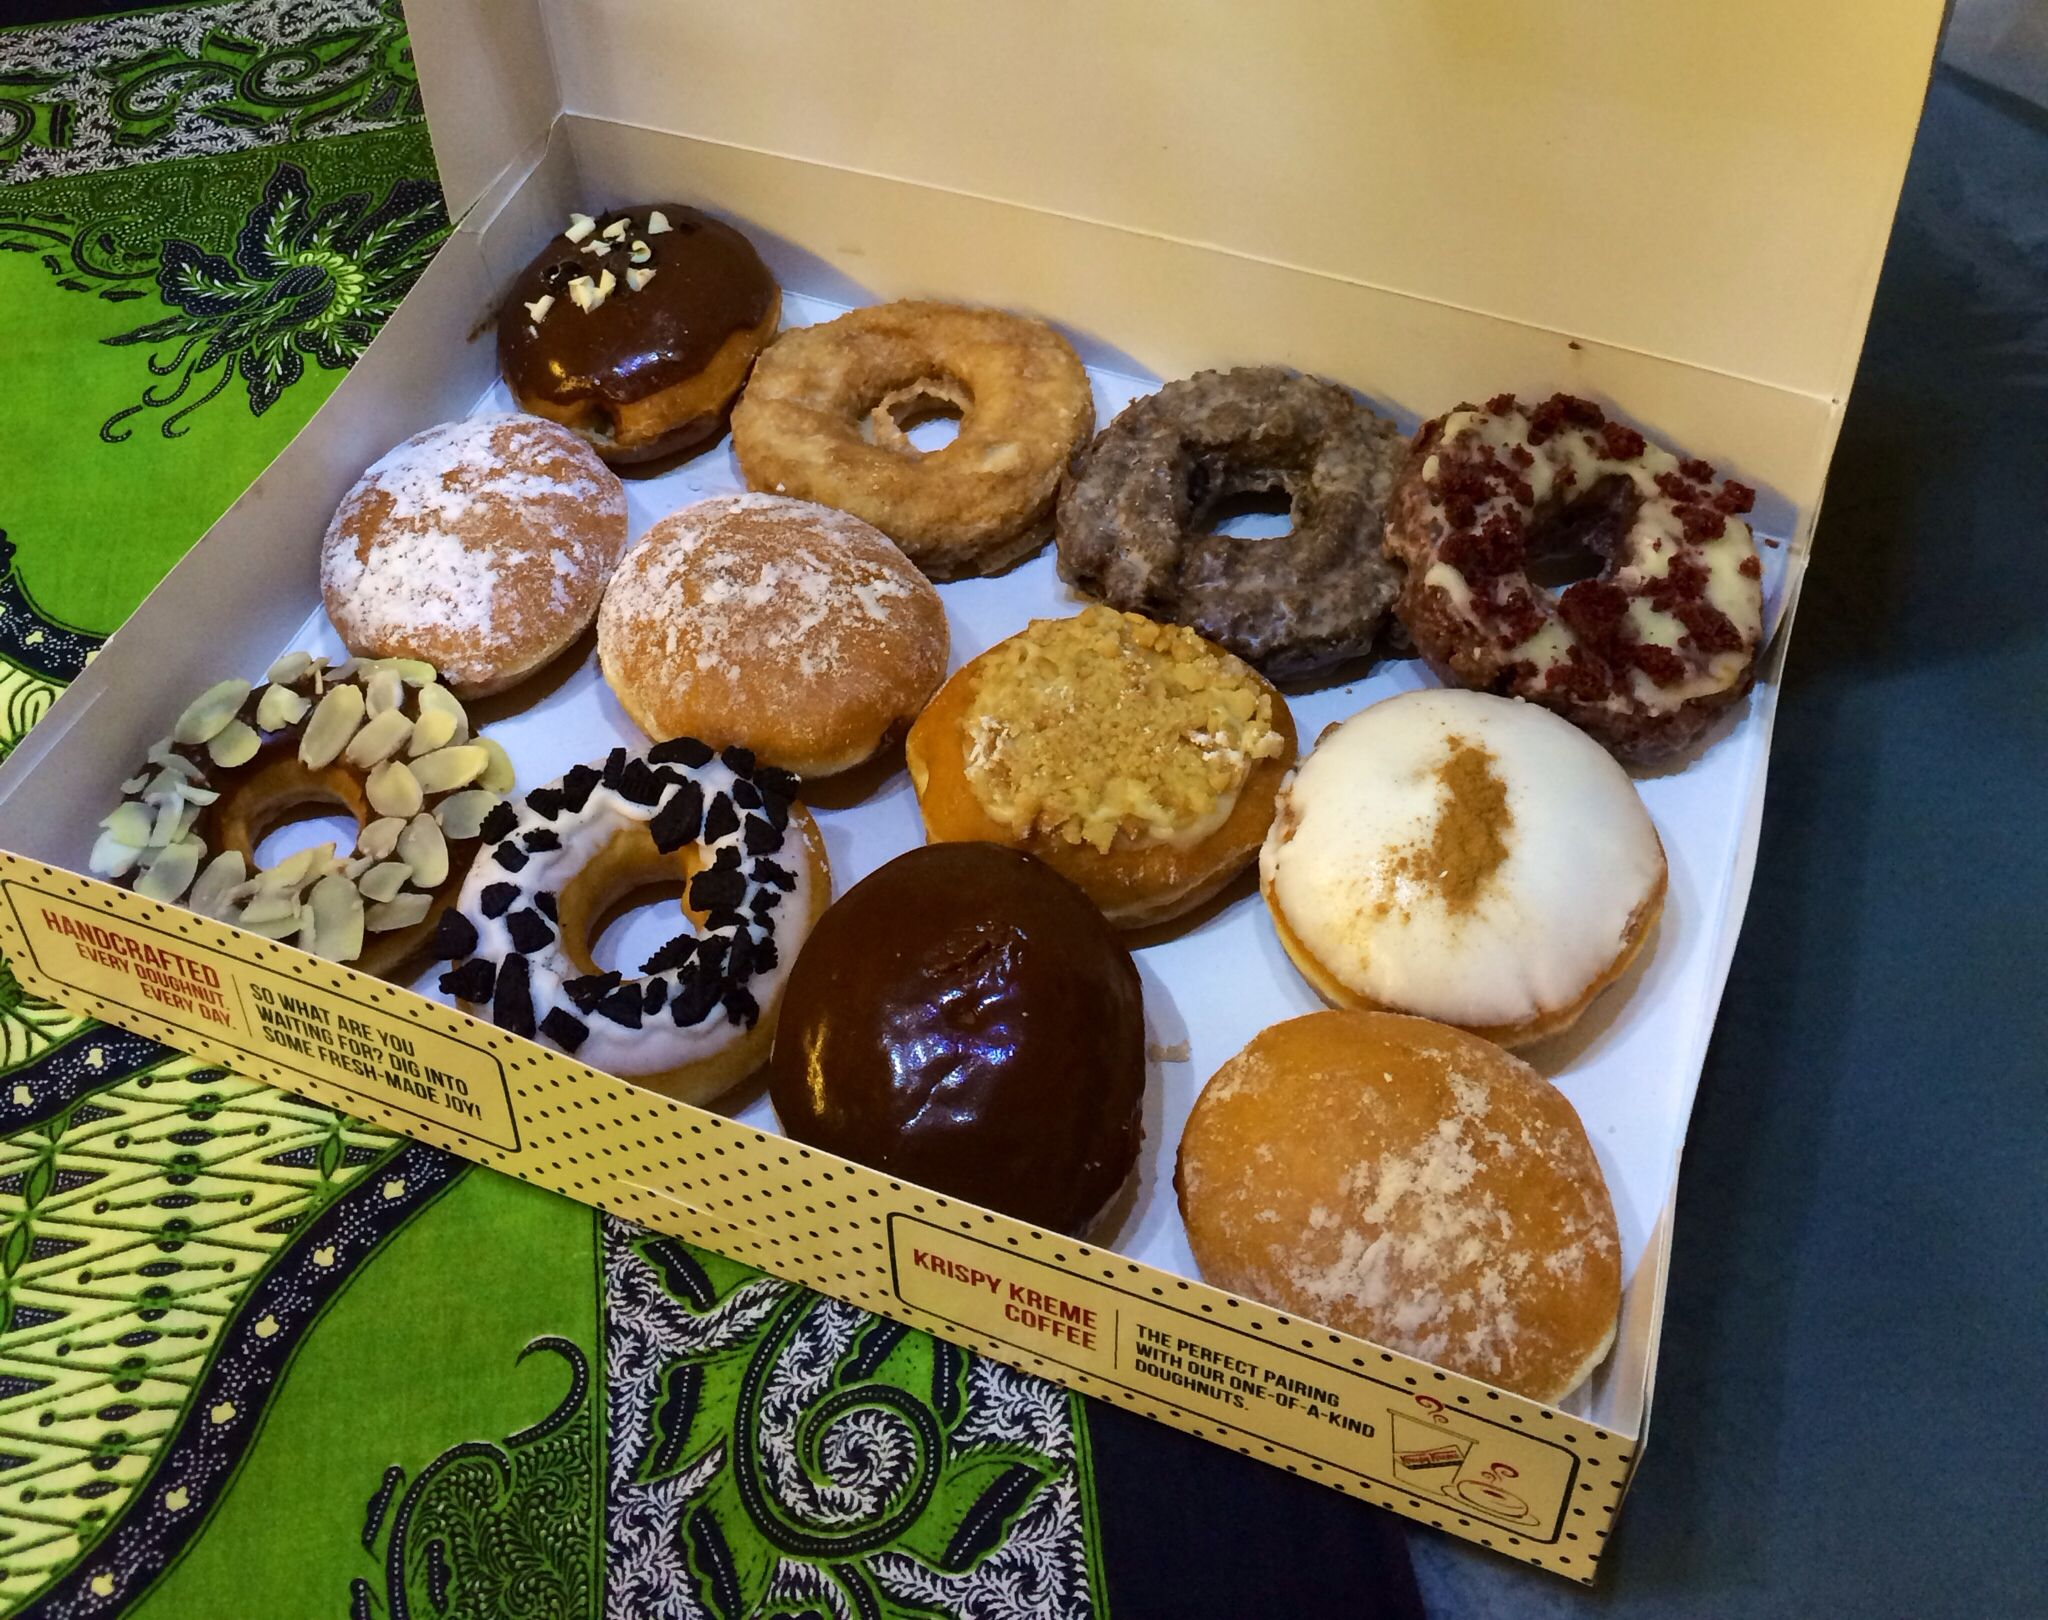 Assorted Donuts By Krispy Kreme Halal Certified Tangs Basement Orchard Rd Singapore Halal Snacks Food Snacks